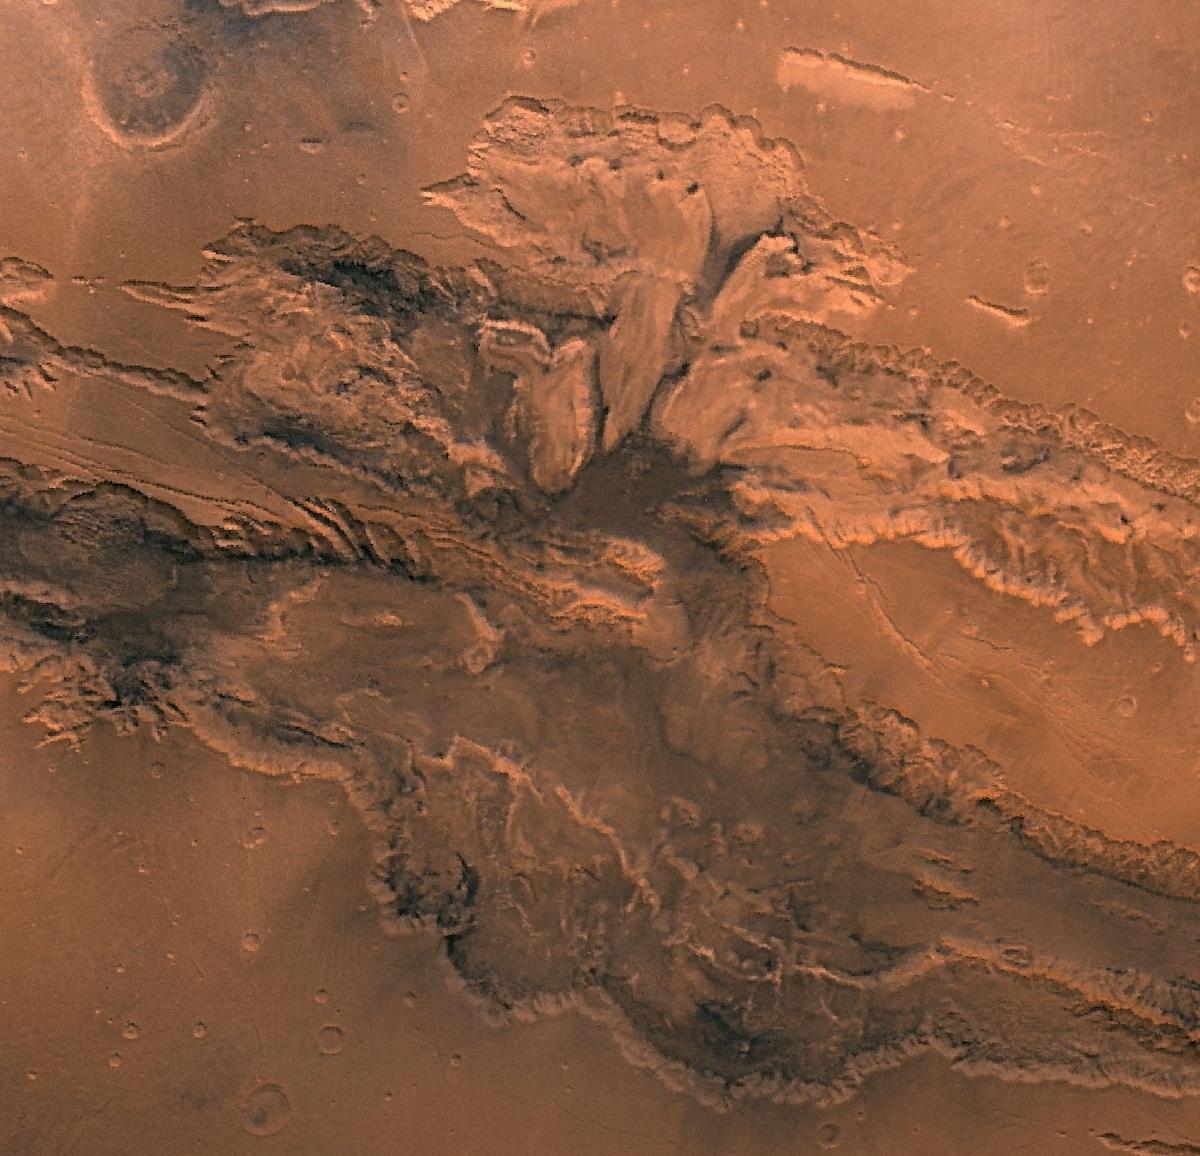 Valles Marineris on Mars - NASA Photo